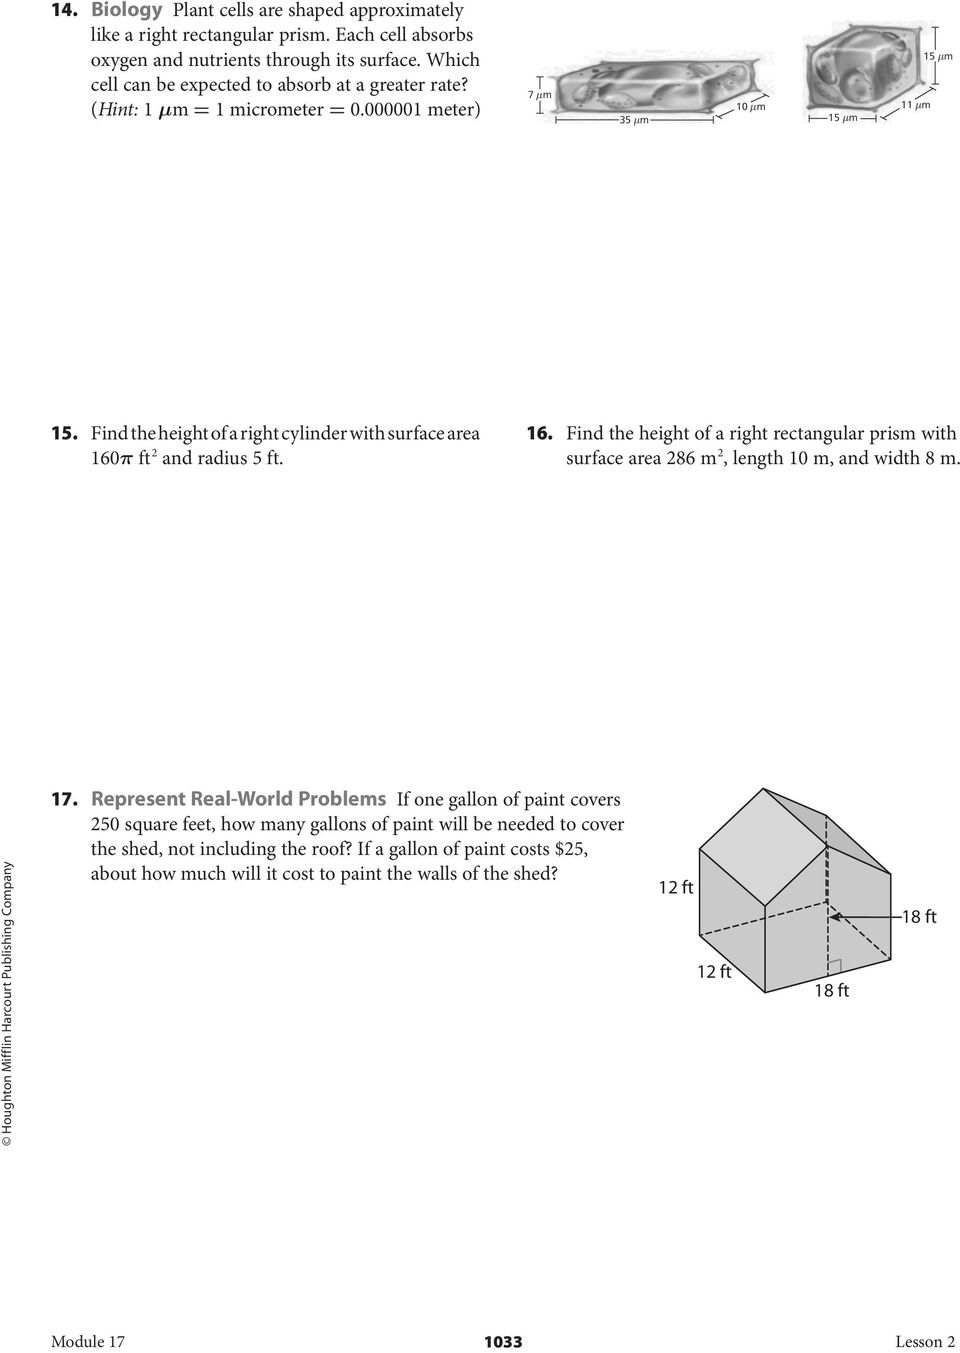 homework and practice lesson 6-8 surface area of prisms and cylinders